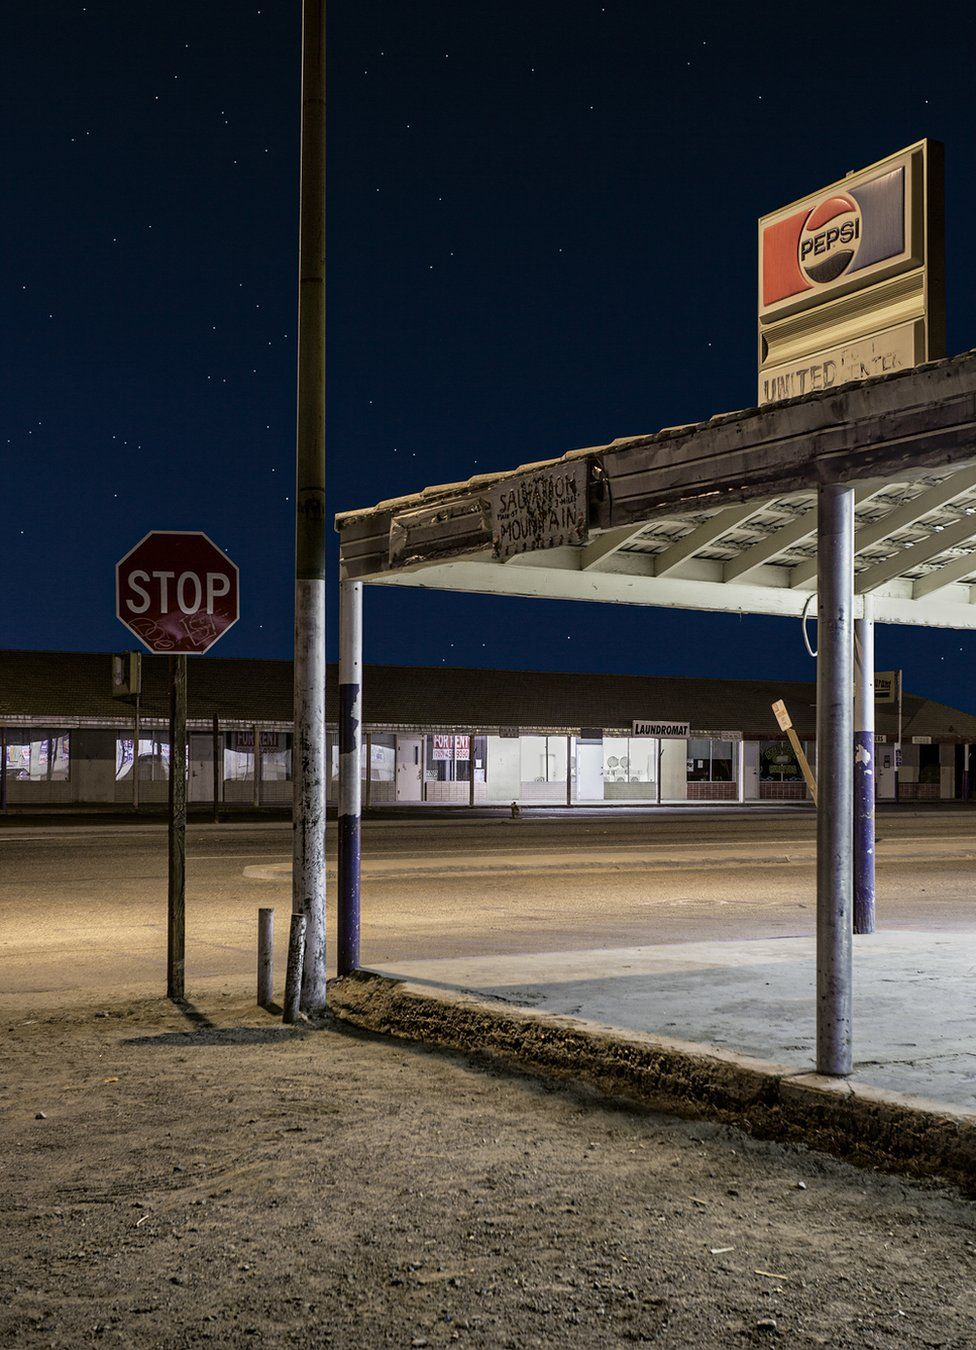 A night view of an abandoned fuel station in an empty street under a starlit sky